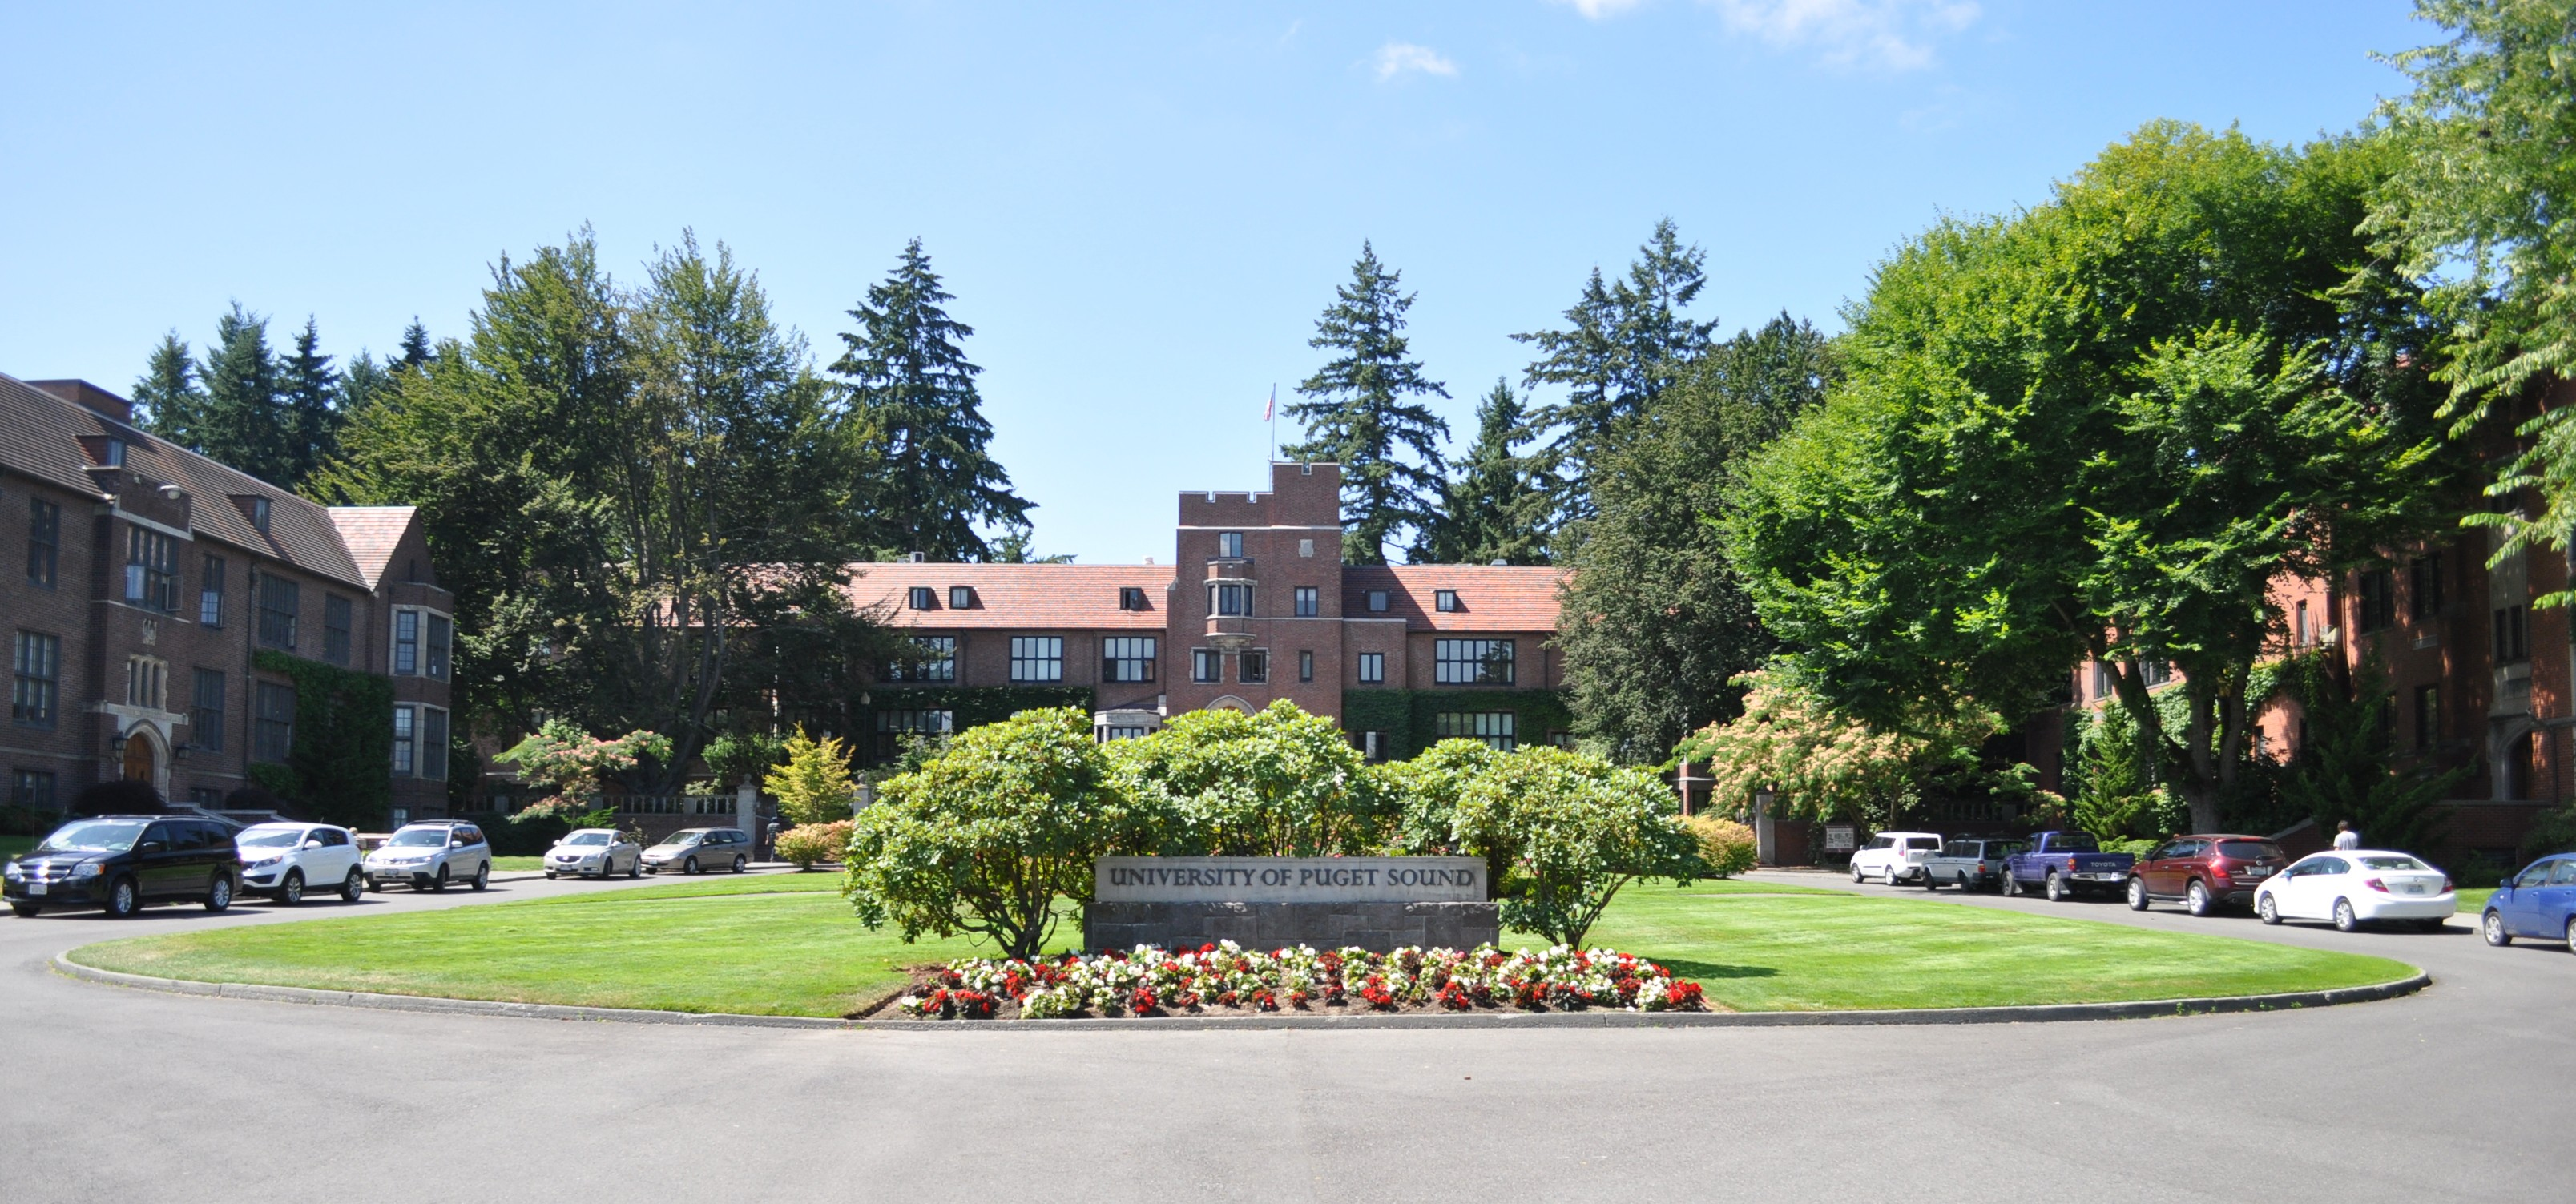 Tacoma's University of Puget Sound | Living in Pierce County